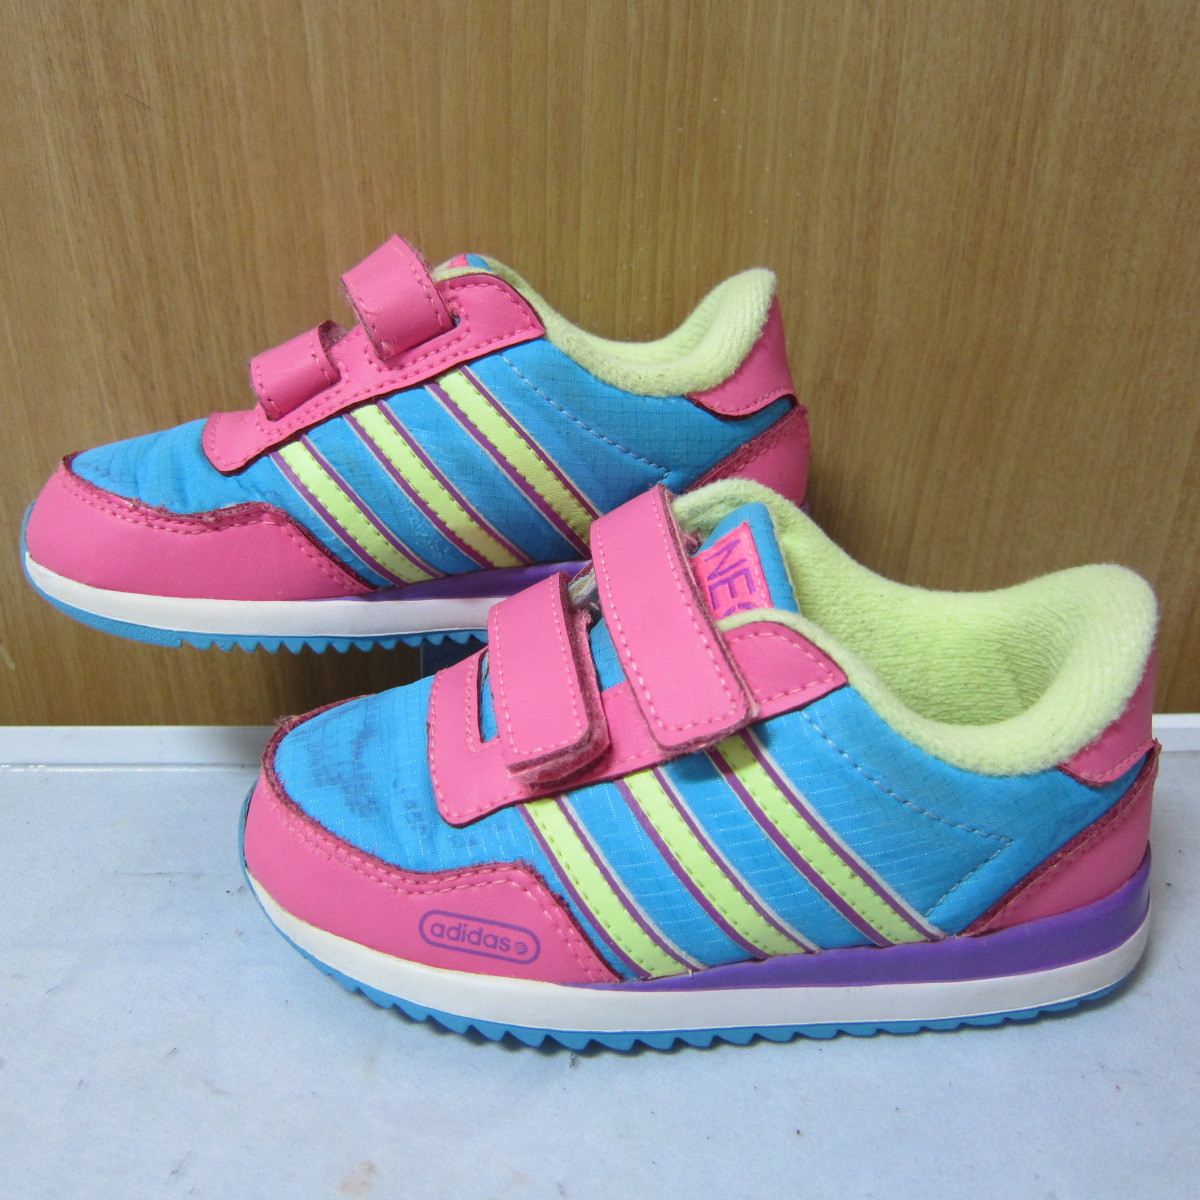 big discount release info on how to buy baby shoes Adidas Neo (G52727) water pink purple yellow 13cm ...